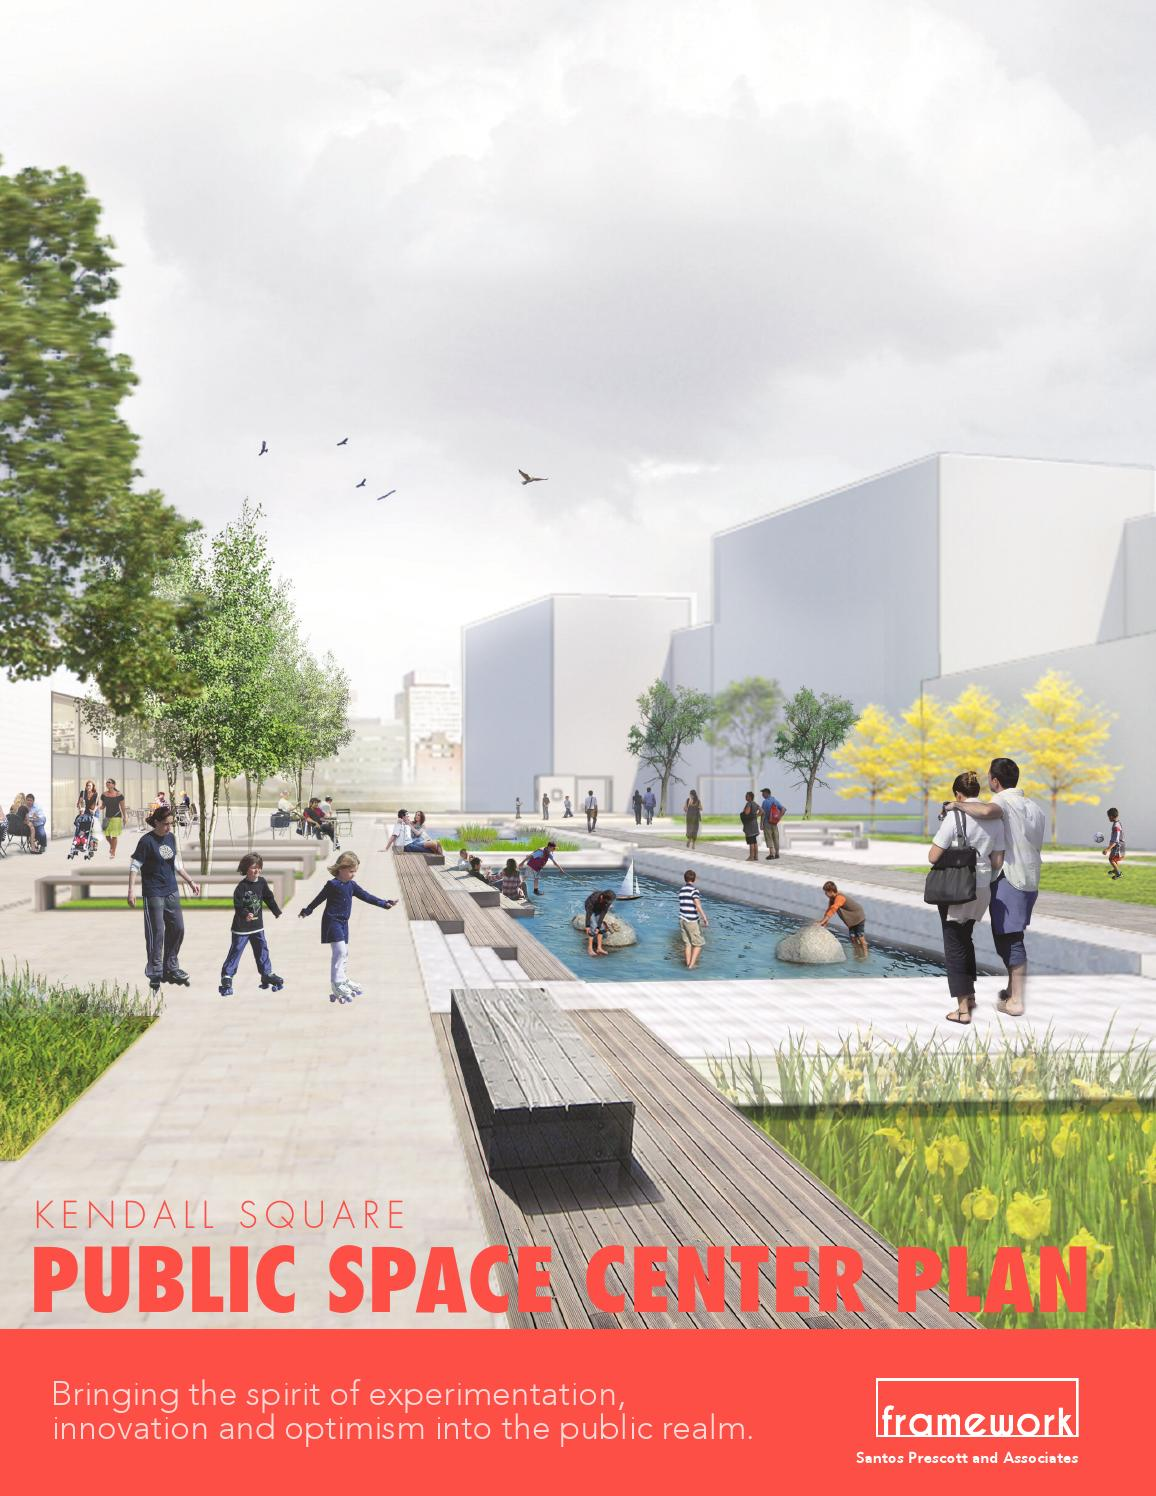 kendall square public space center plan full document by frameworkkendall square public space center plan full document